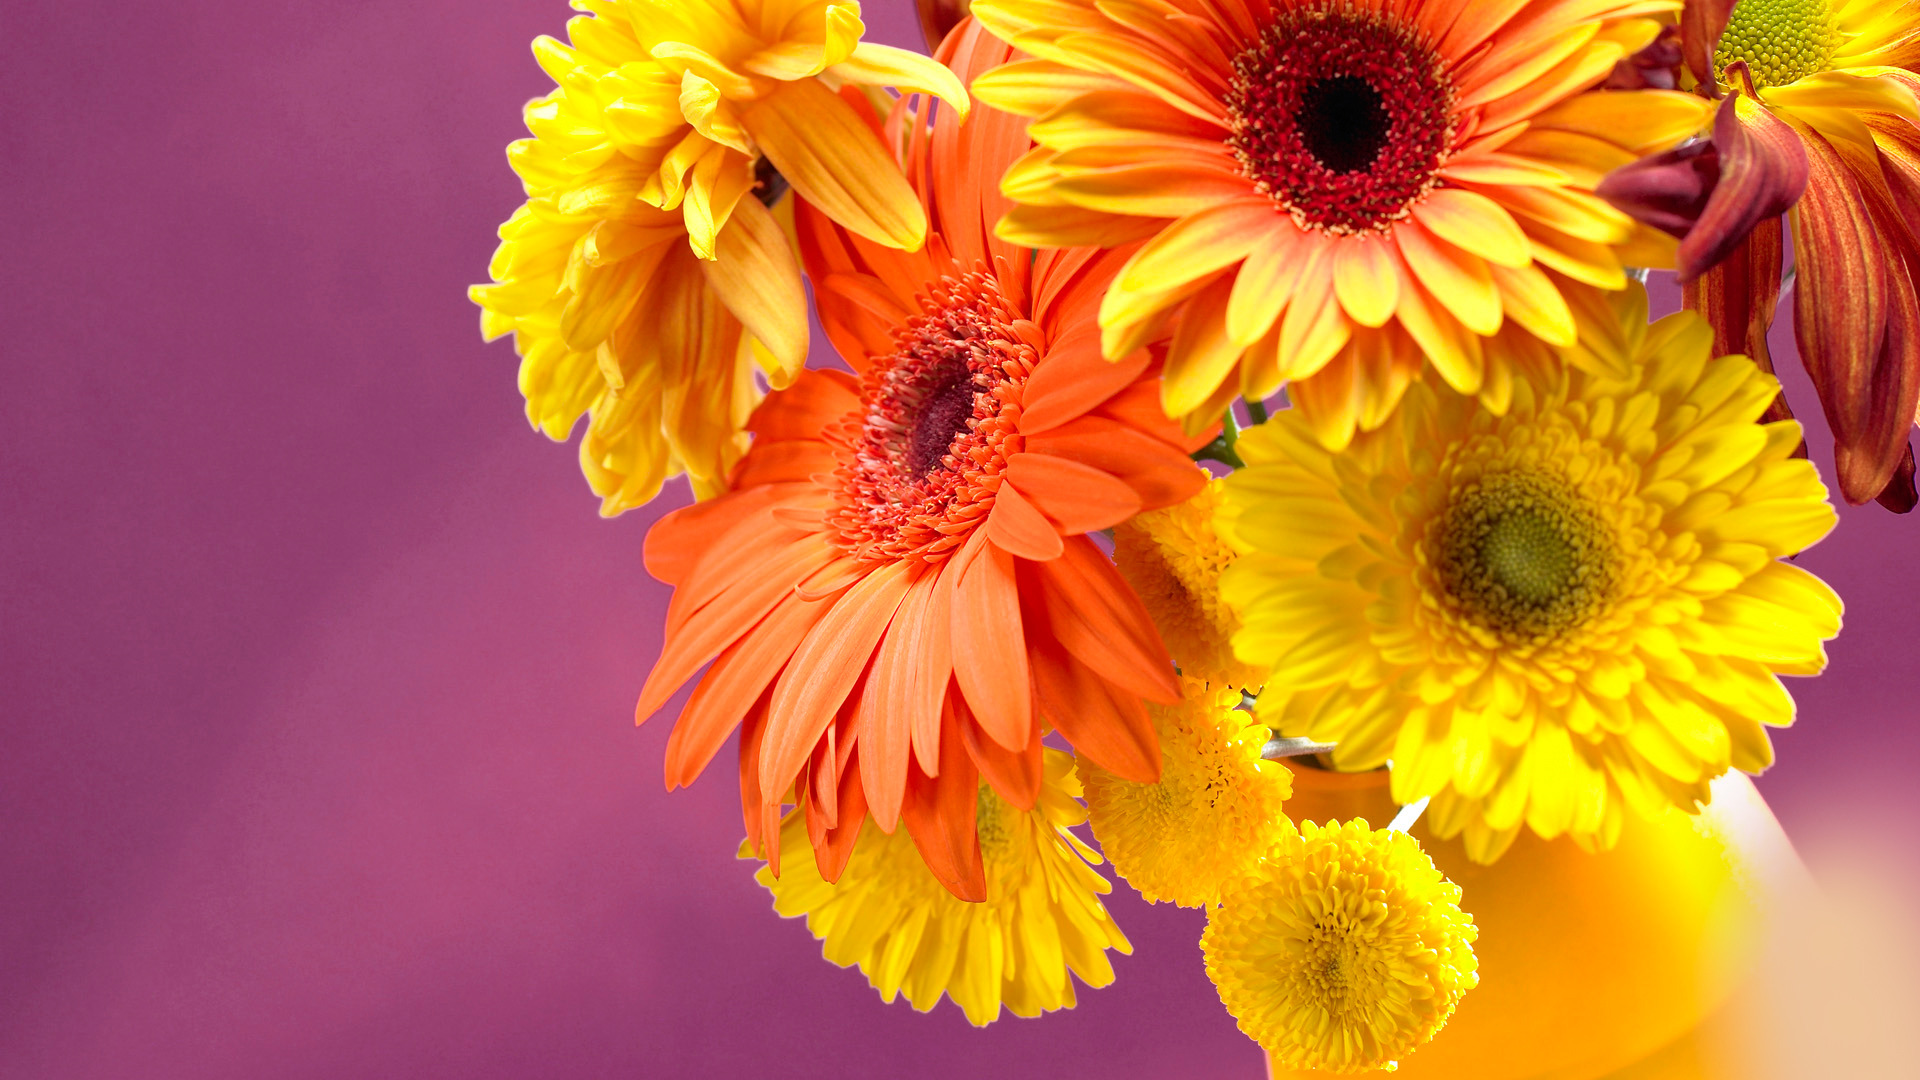 gerbera flower wallpaper